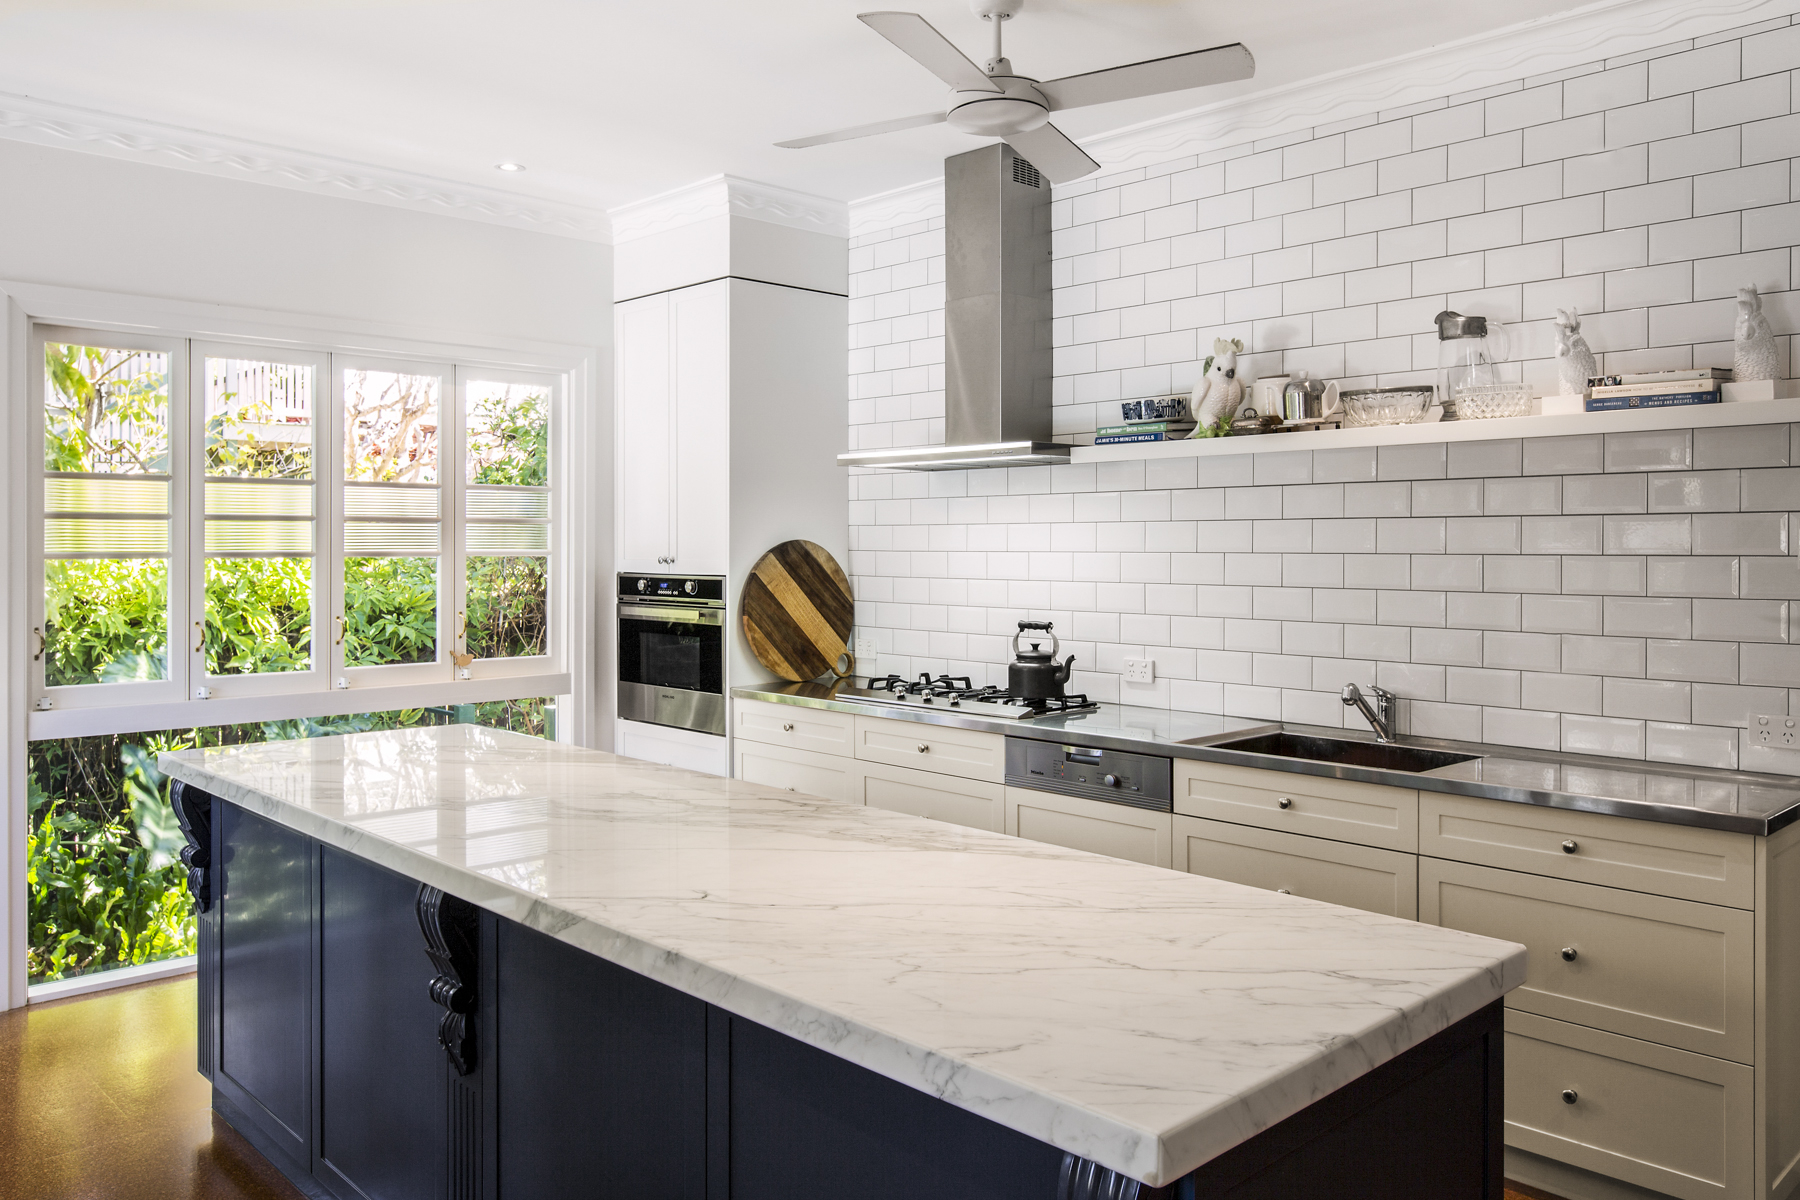 kitchens brisbane - design and renovations | konstruct interior